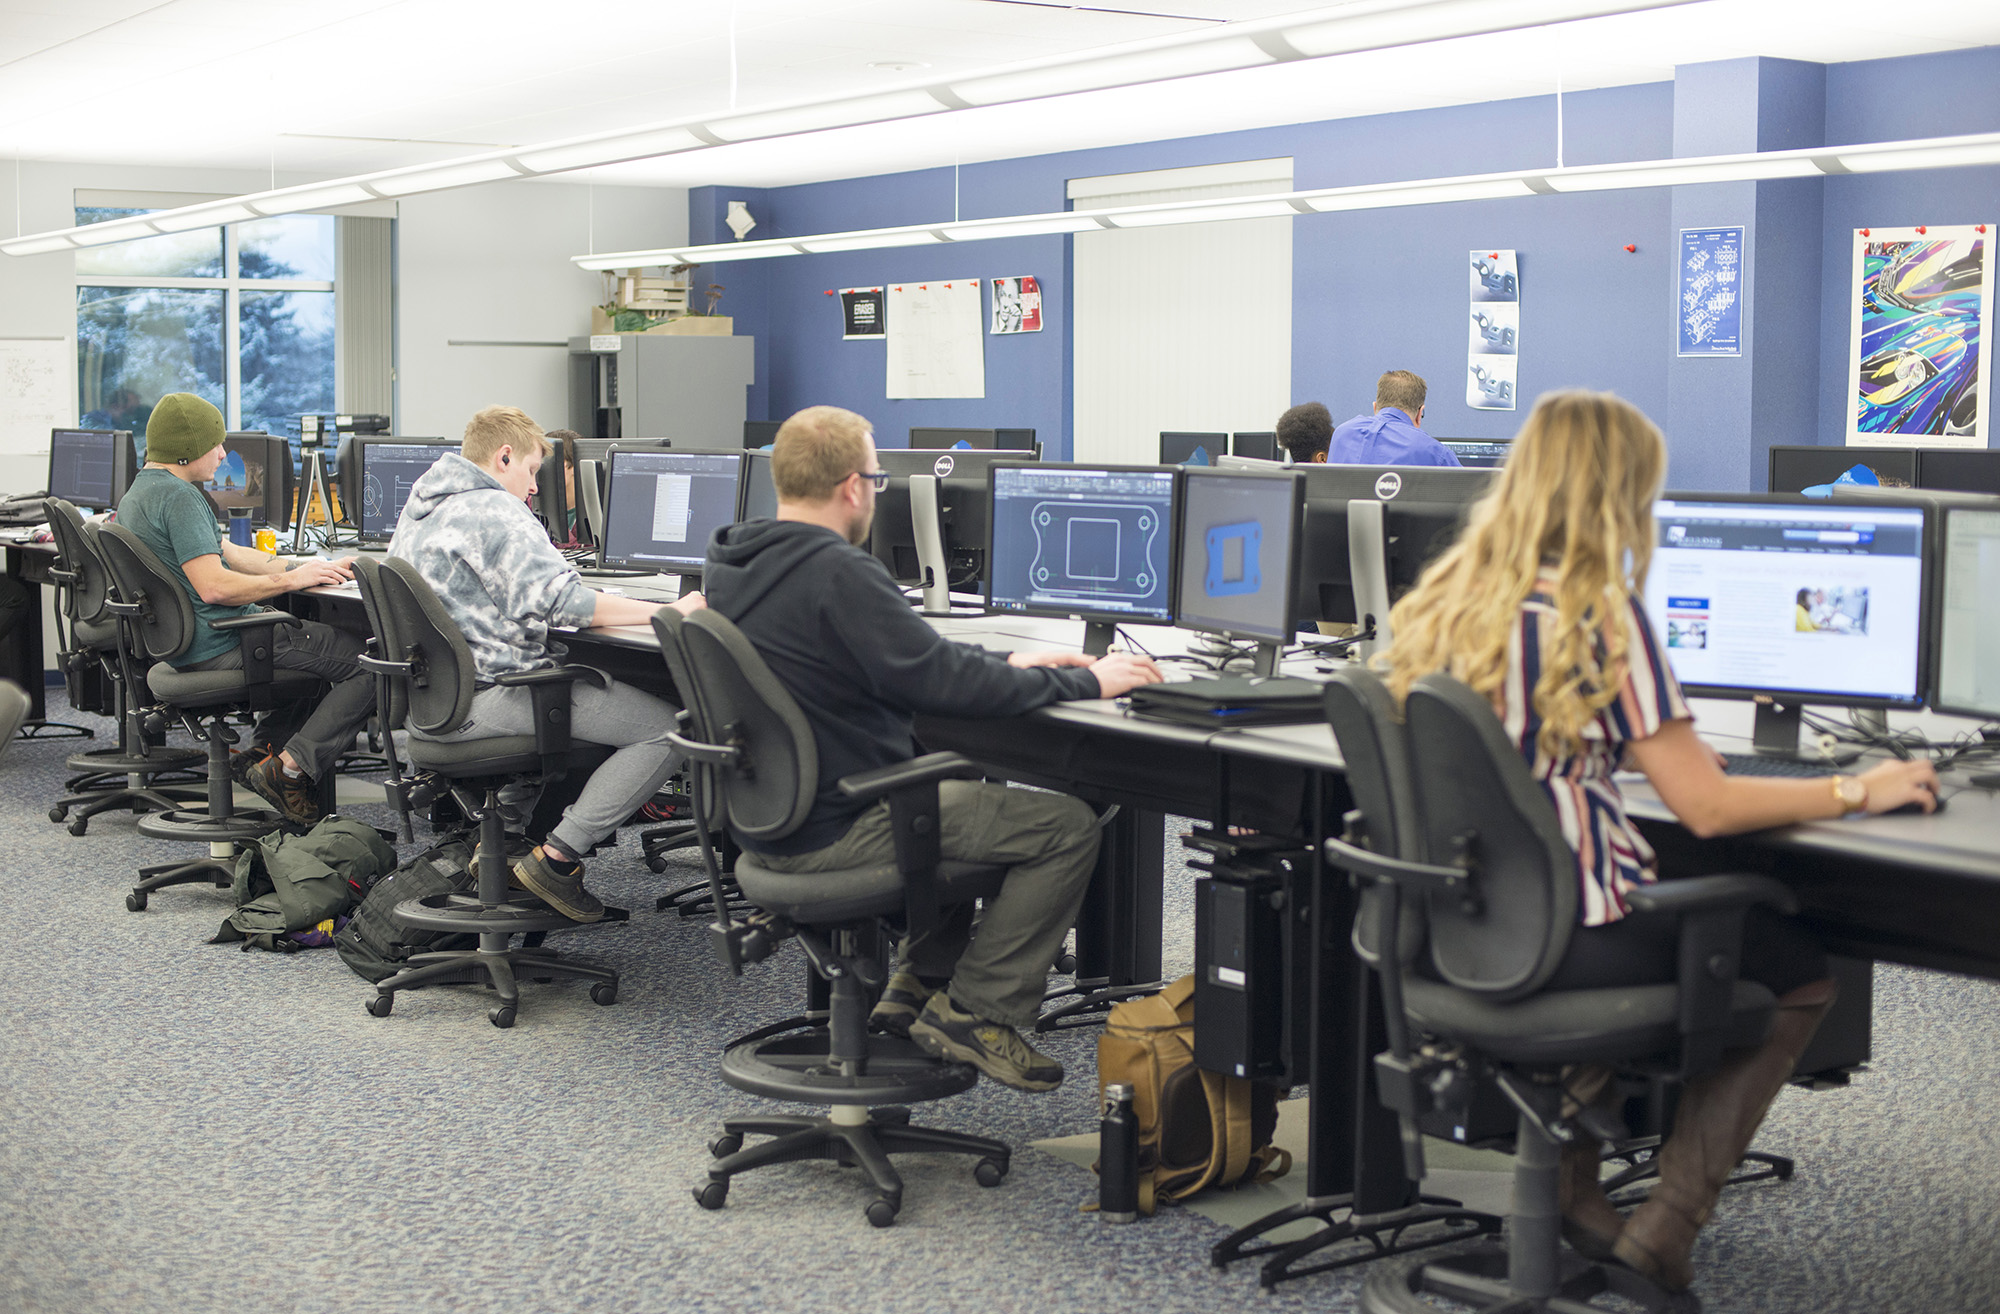 CAD students work on computers in the CAD Lab.